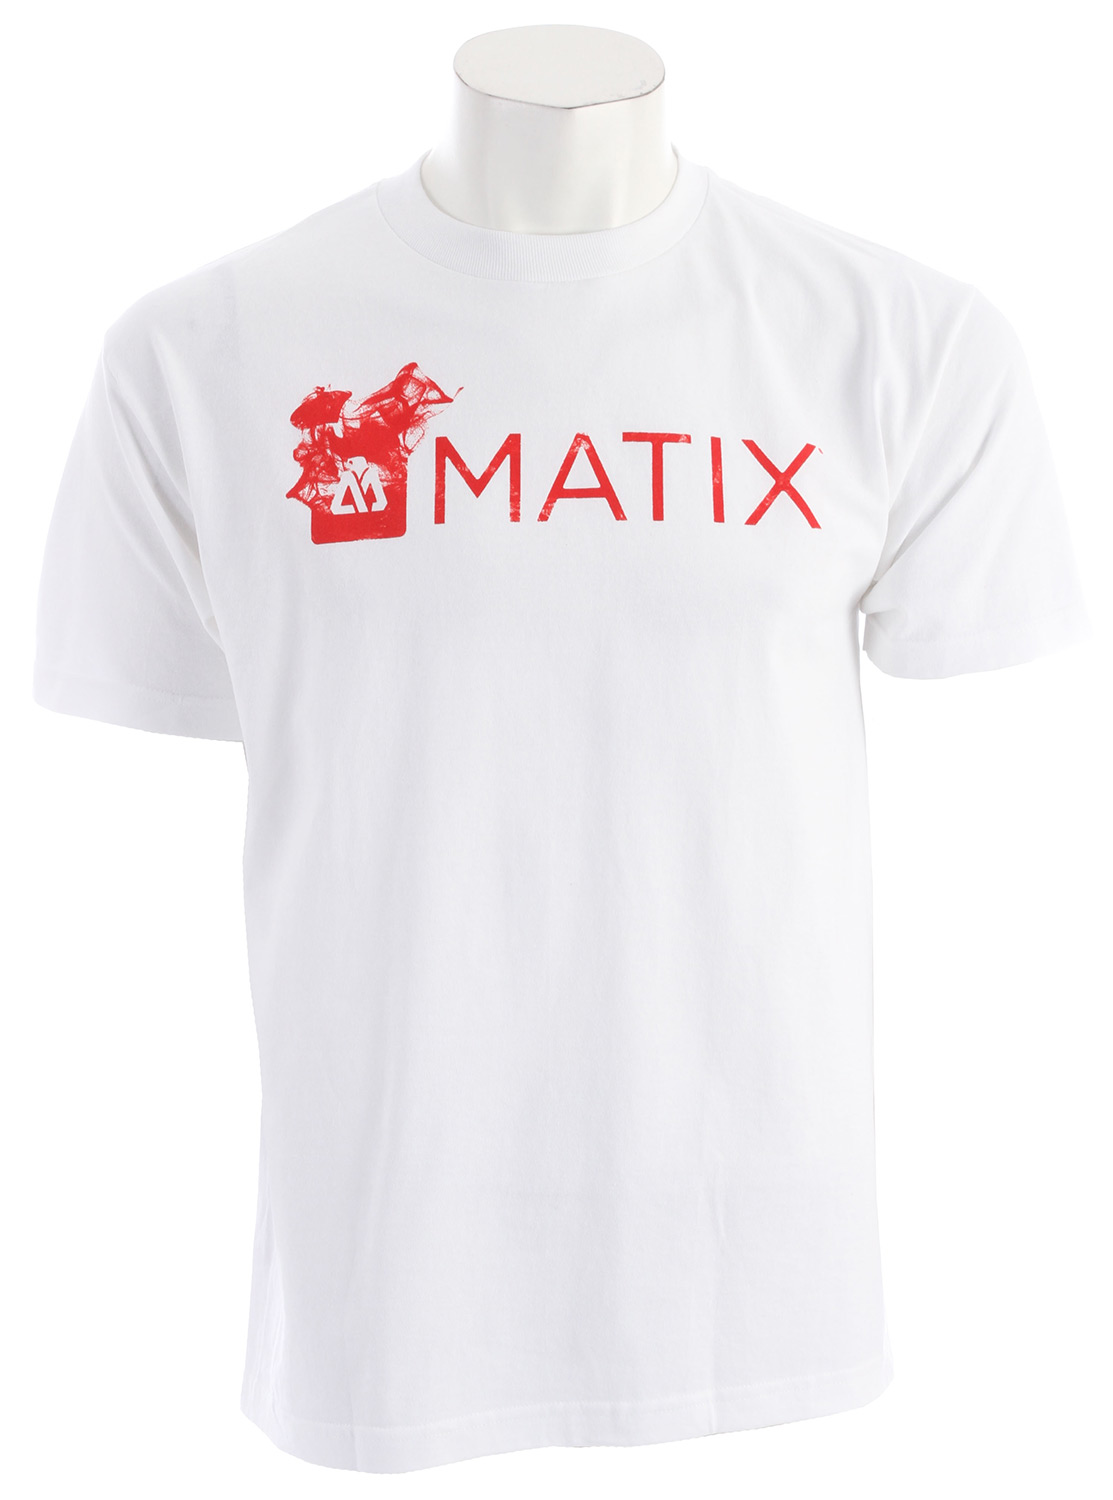 Matix Monolin Smoked T-Shirt - $7.95